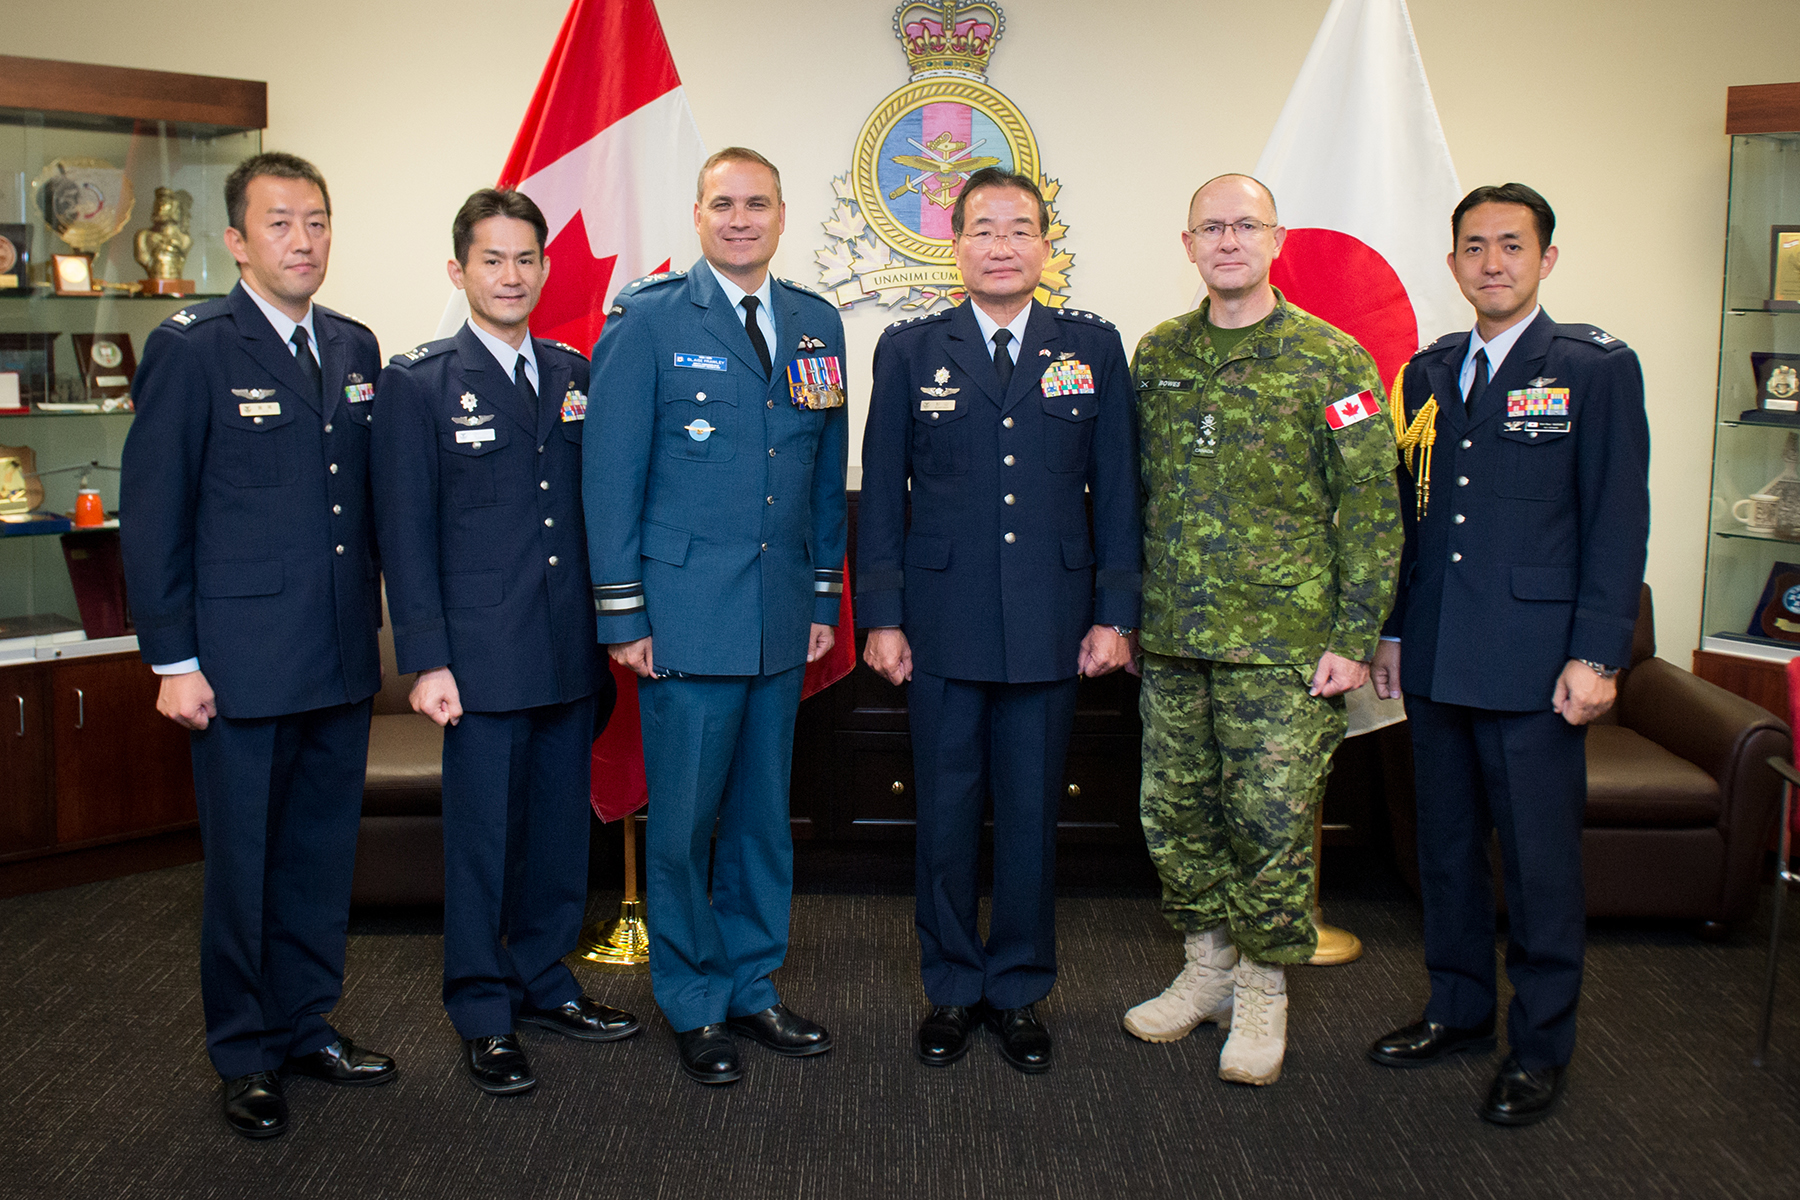 From left, Colonel Dan Suzuki, Air Attaché to the Embassy of Japan in the U.S.; Colonel Yasuhiro Ogawa, Deputy Director, Defence Plans/Policies and Programs Division, Air Staff Office, Japan Air Self-Defence Force (JASDF); Major-General Blaise Frawley, Deputy Commander of the RCAF; General Yoshiyuki Sugiyama, Chief of Staff, Koku-Jieitai, (JASDF); Lieutenant-General Steve Bowes, Commander Canadian Joint Operations Command; and Lieutenant Colonel Takehiro Lio, Staff, Defence Plans/Policies and Programs Division, Air Staff Office, JASDF; gather after signing the visitors' book at Canadian Joint Operations Command Headquarters in Ottawa, Ontario, on September 22, 2017. PHOTO: Private Tori Lake, SU14-2017-1136-004